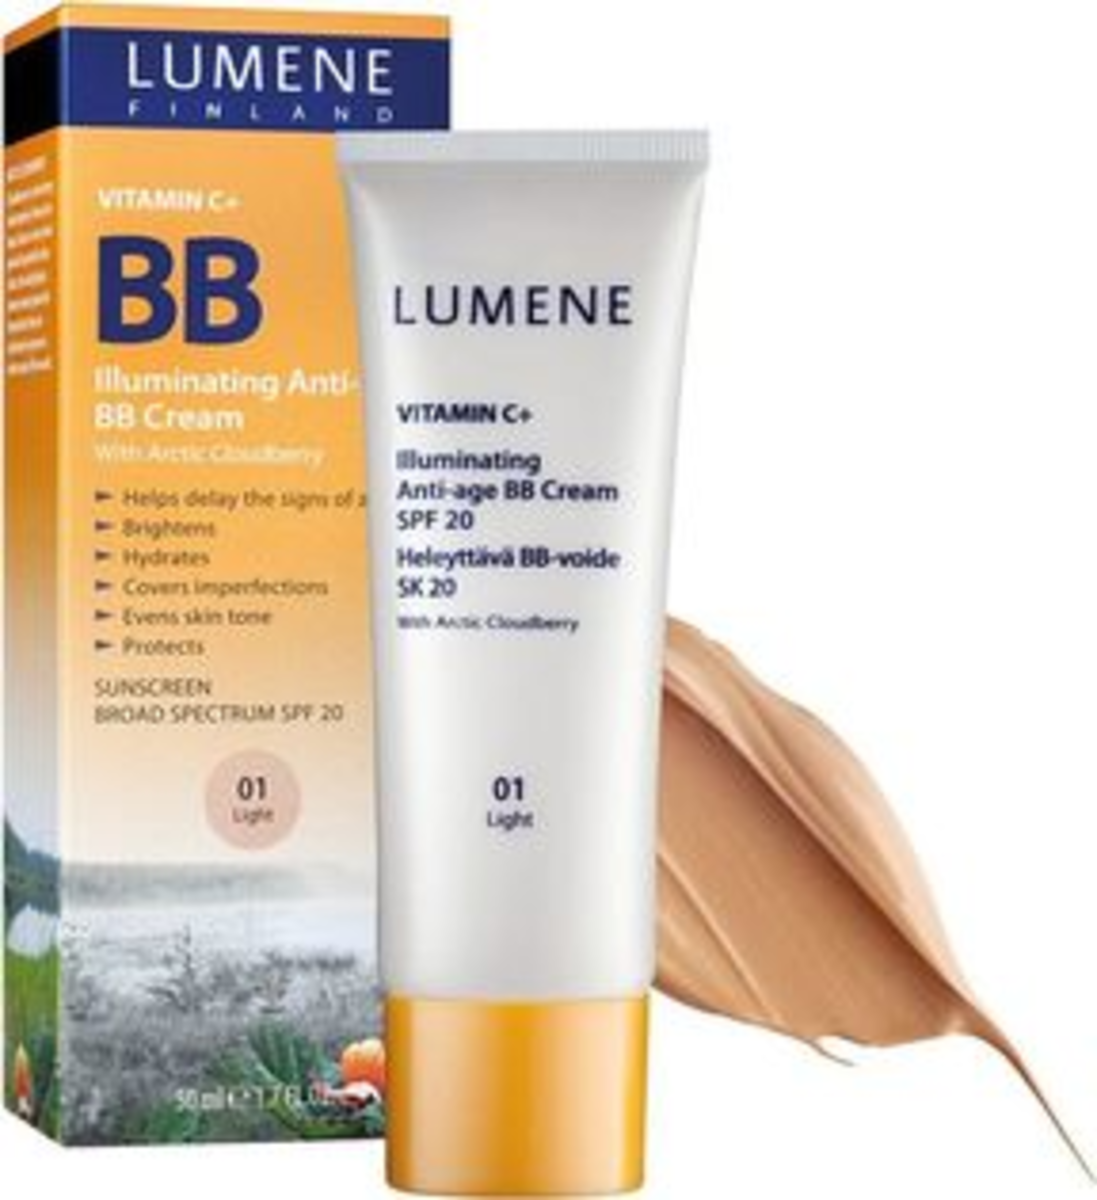 Lumene BB Cream